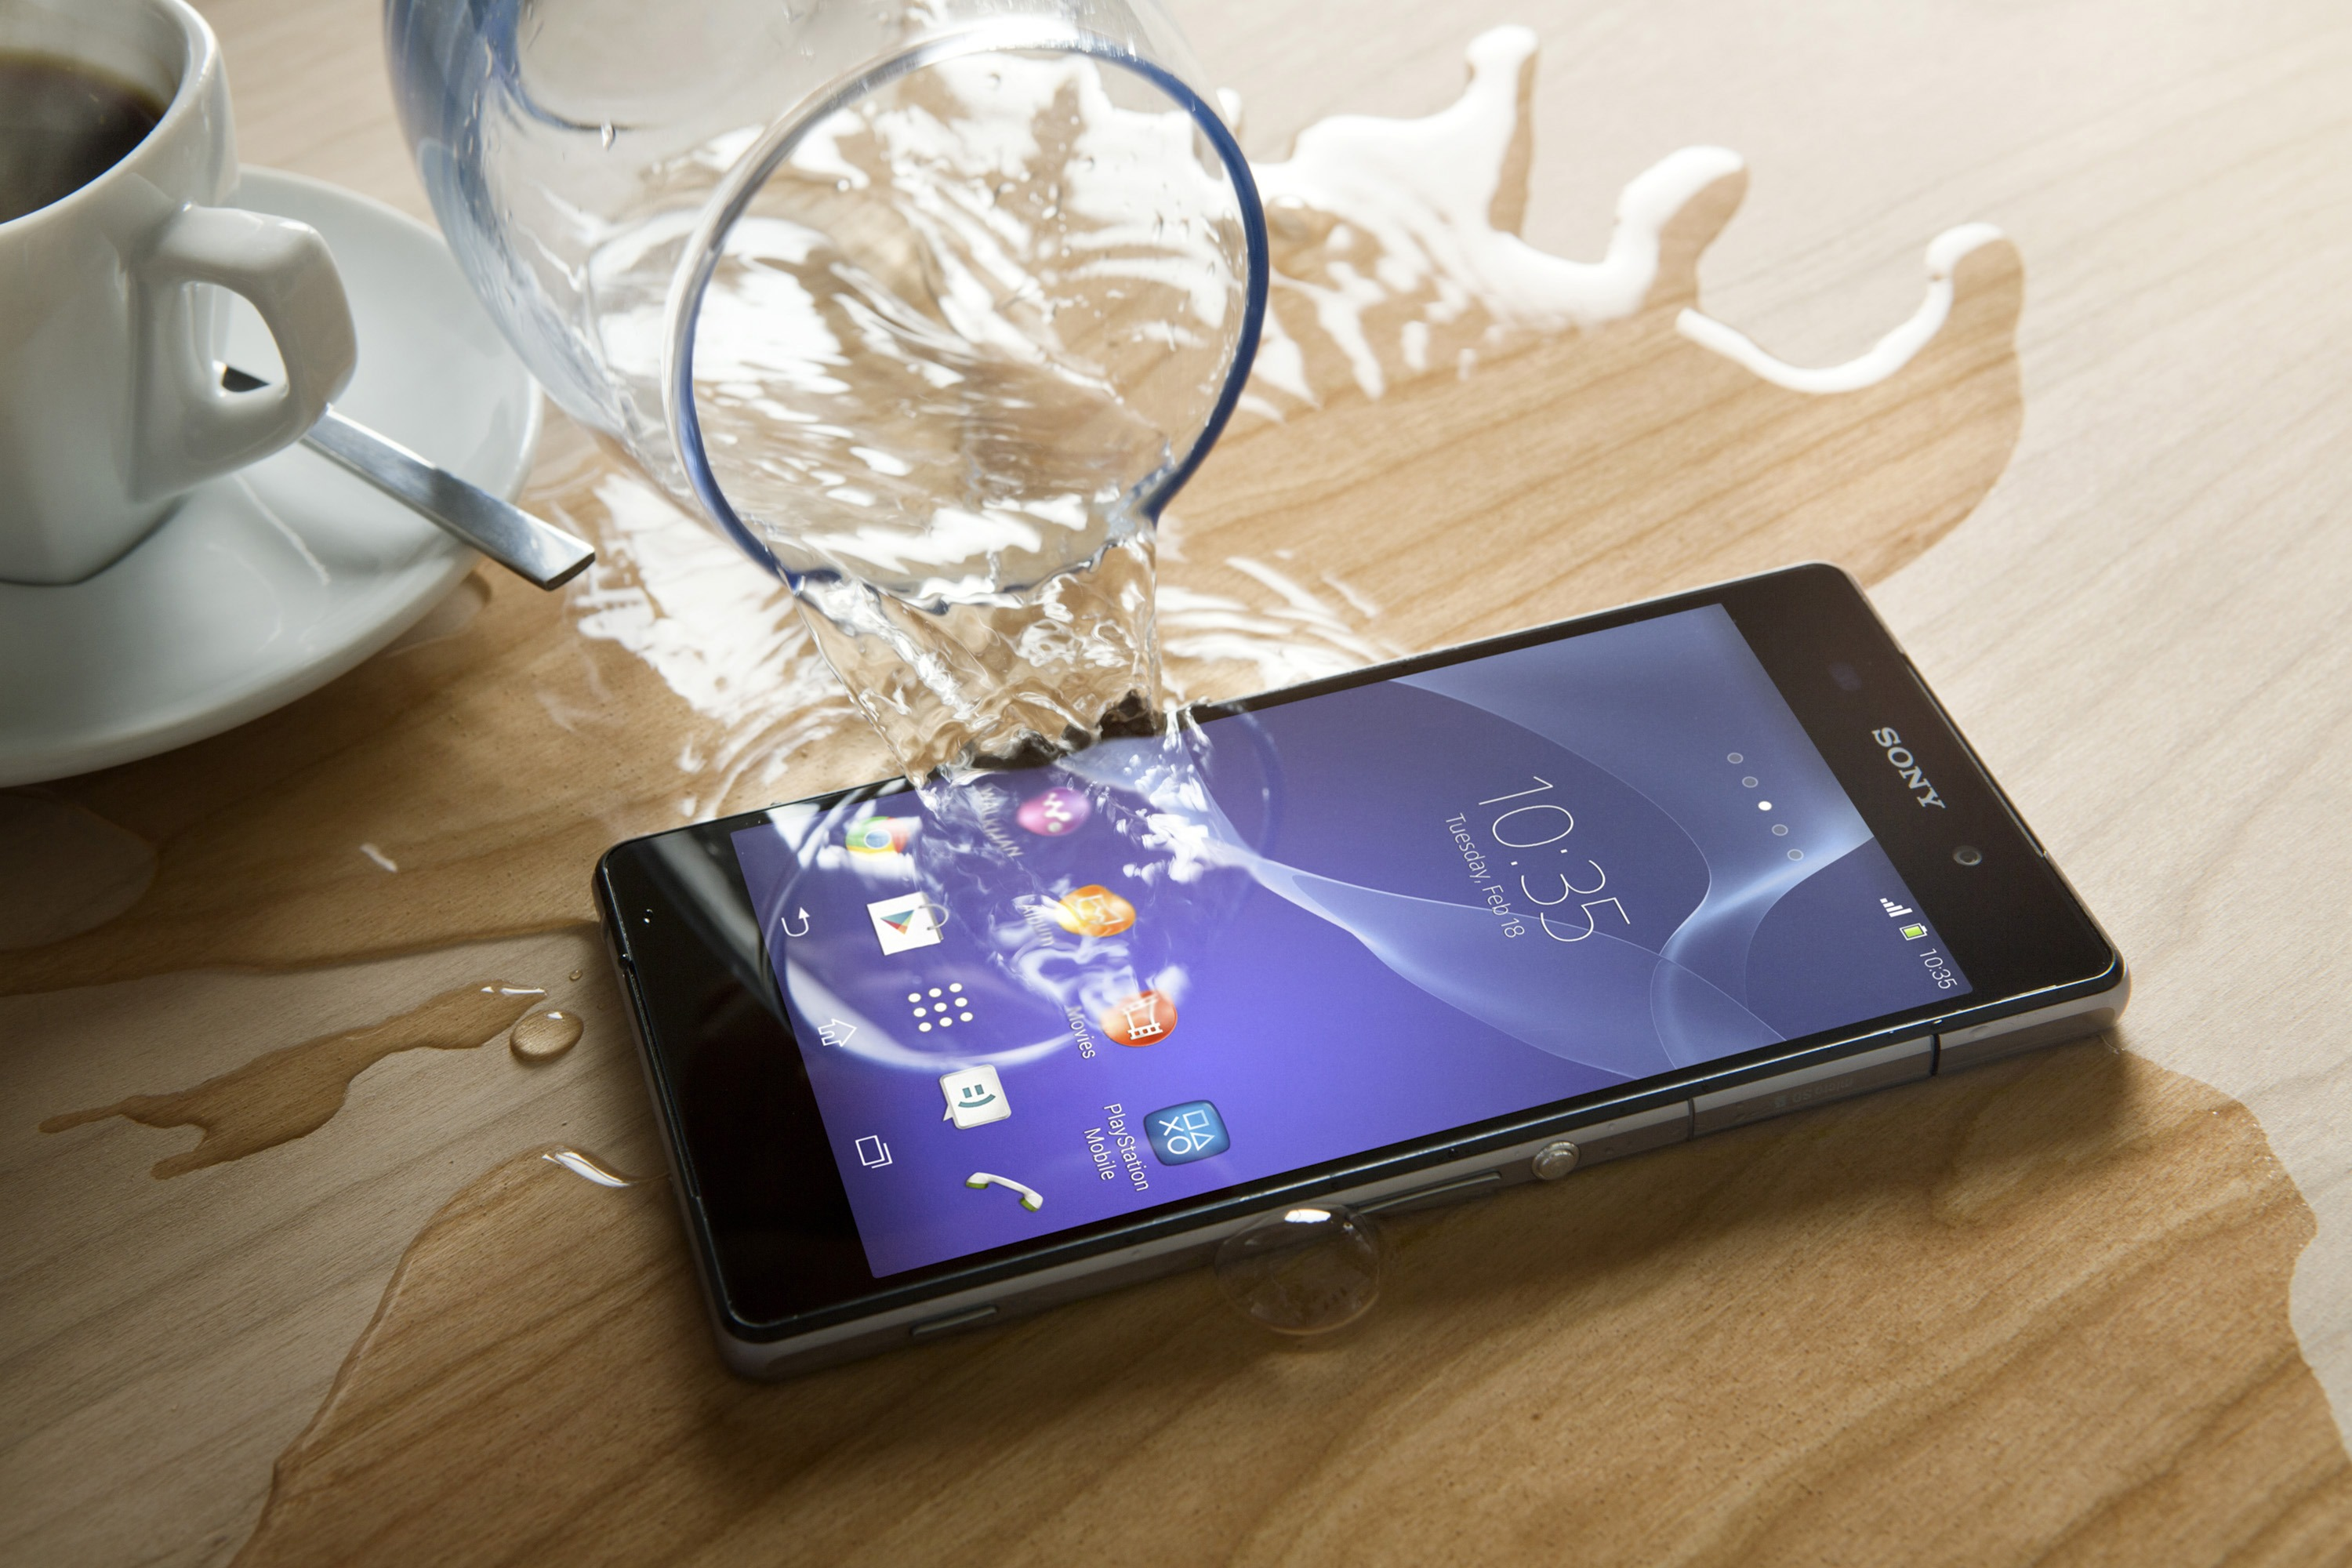 Sony Xperia Devices Claimed to Be Misrepresented as 'Waterproof' in New Lawsuit